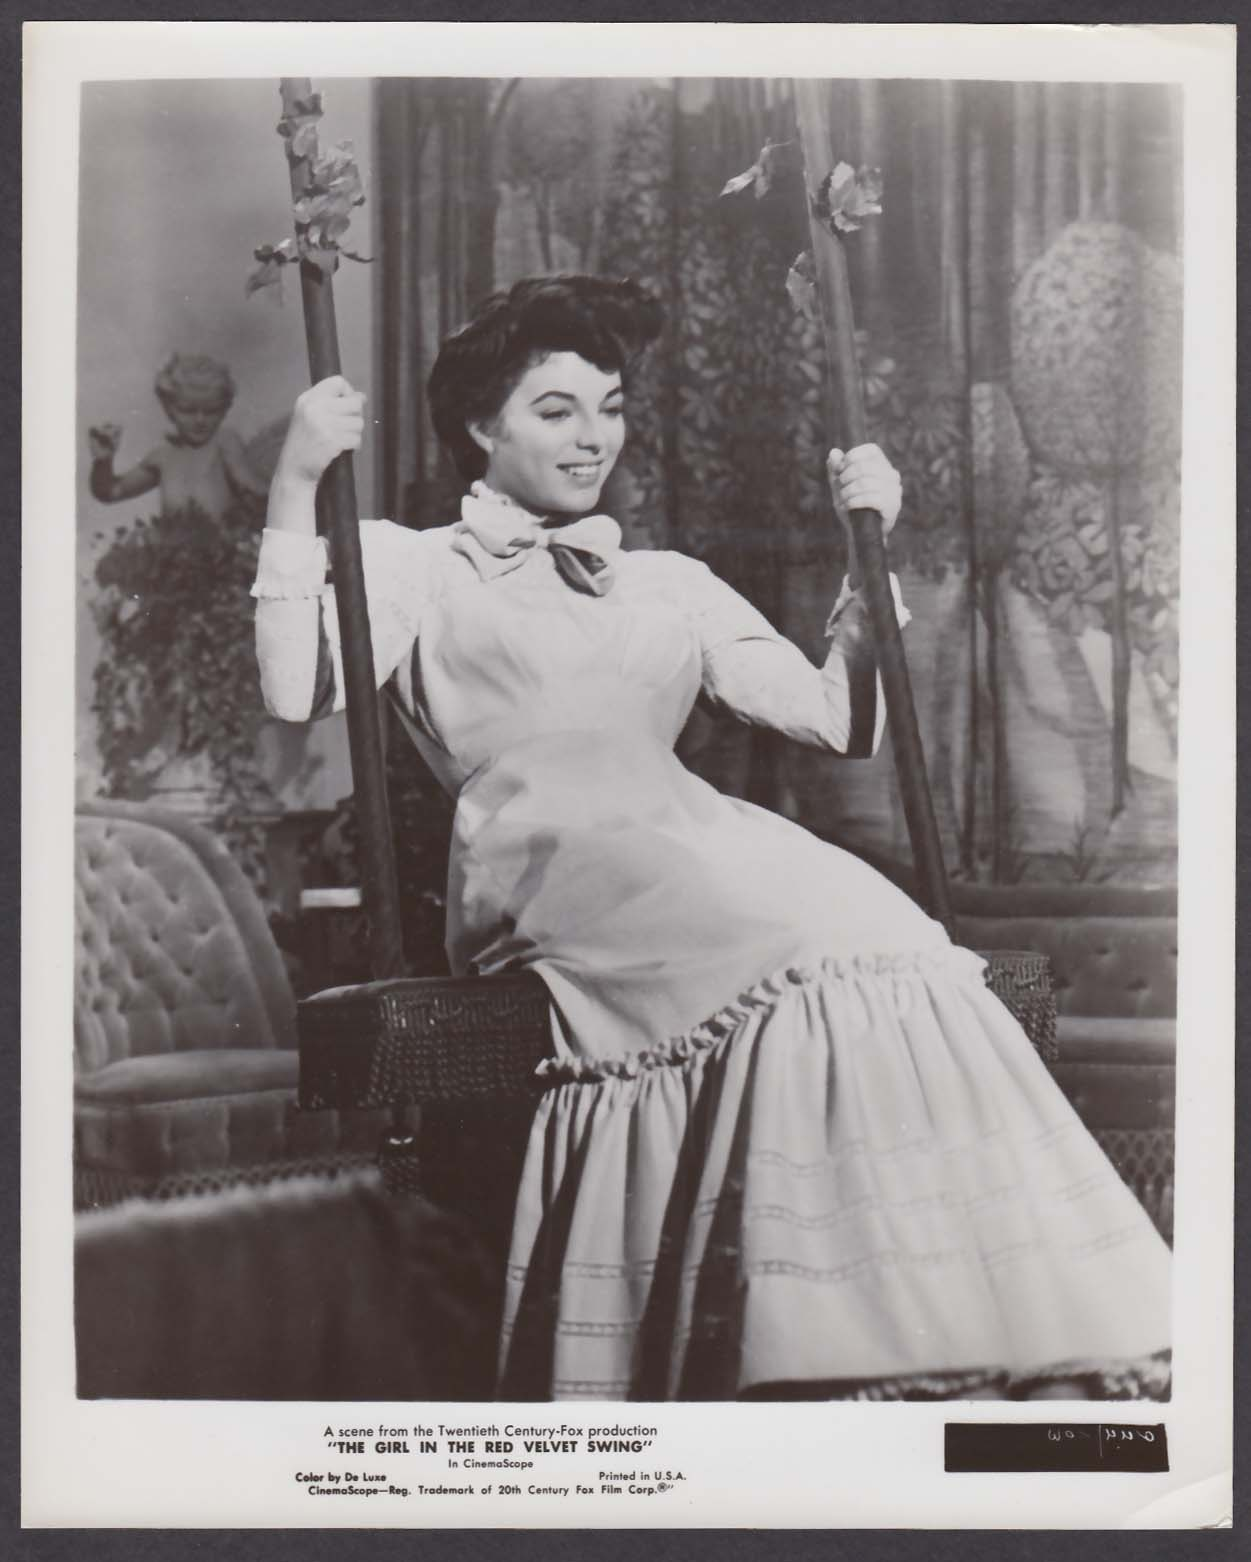 Joan Collins swinging Girl in the Red Velvet Swing 8x10 photo 1955